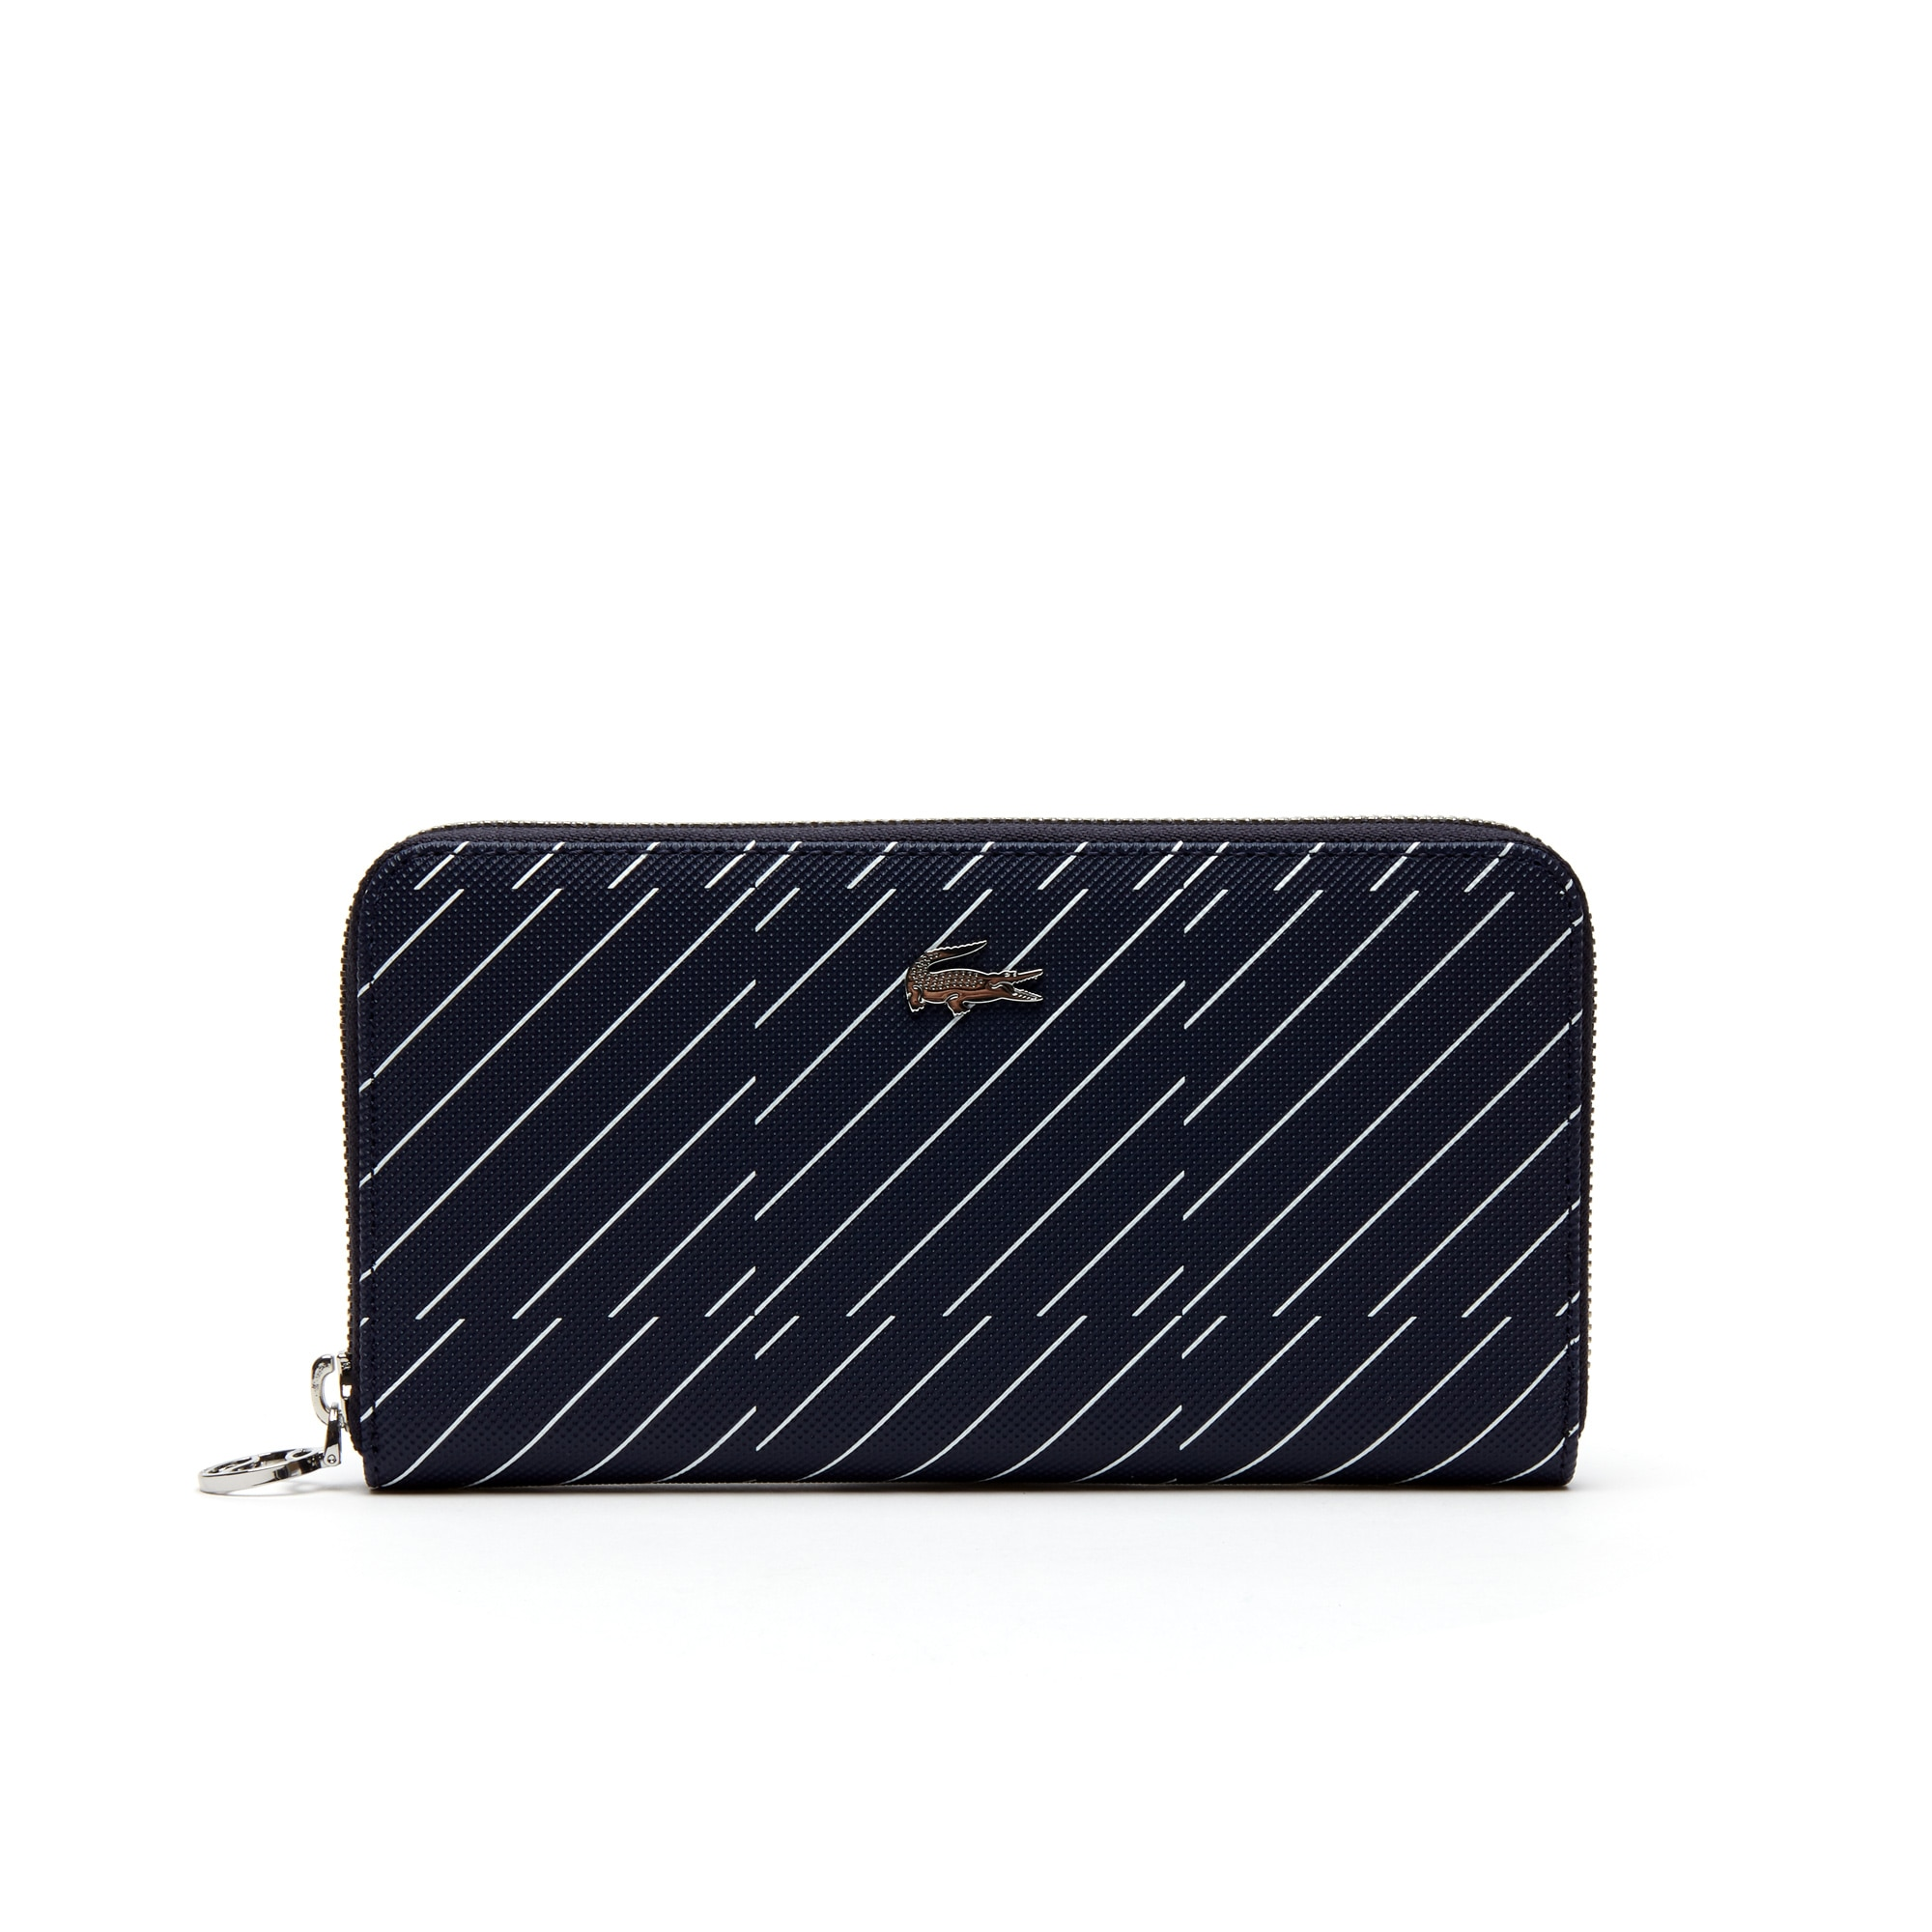 Women's Daily Classic Graphic Print Piqué Canvas Zip Wallet